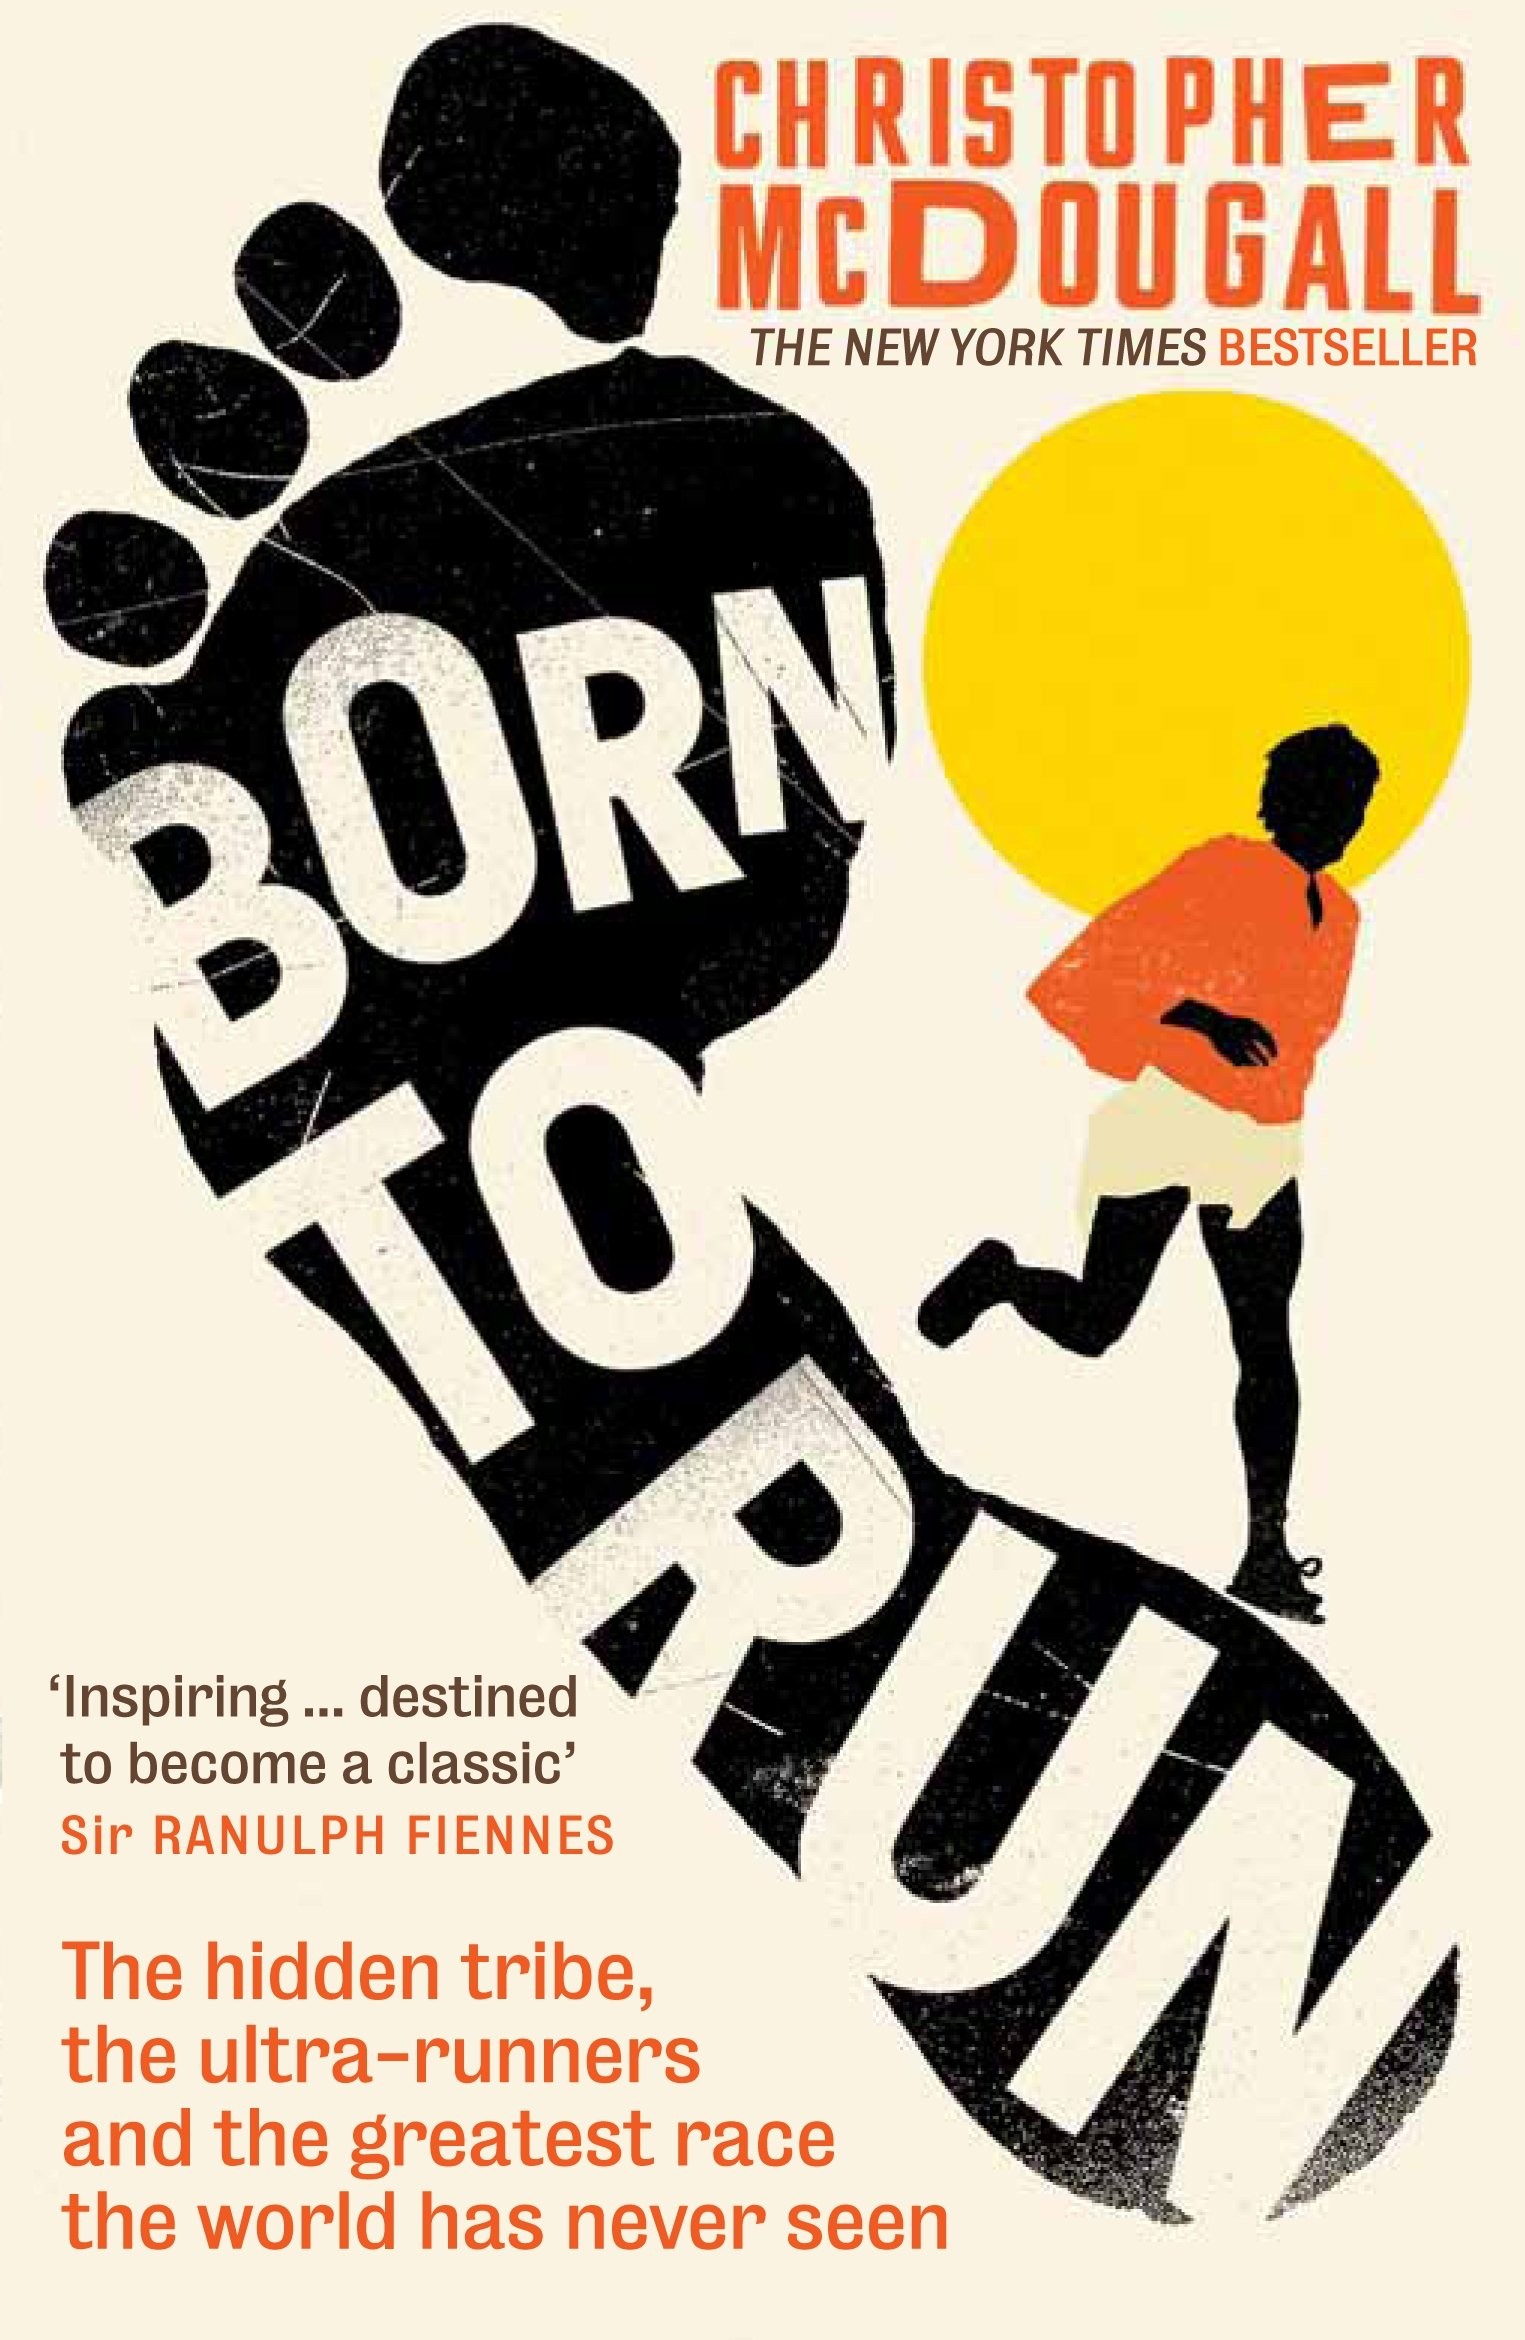 'Born to Run: The Hidden Tribe, the Ultra-Runners, and the Greatest Race the World Has Never Seen' by Christopher McDougall